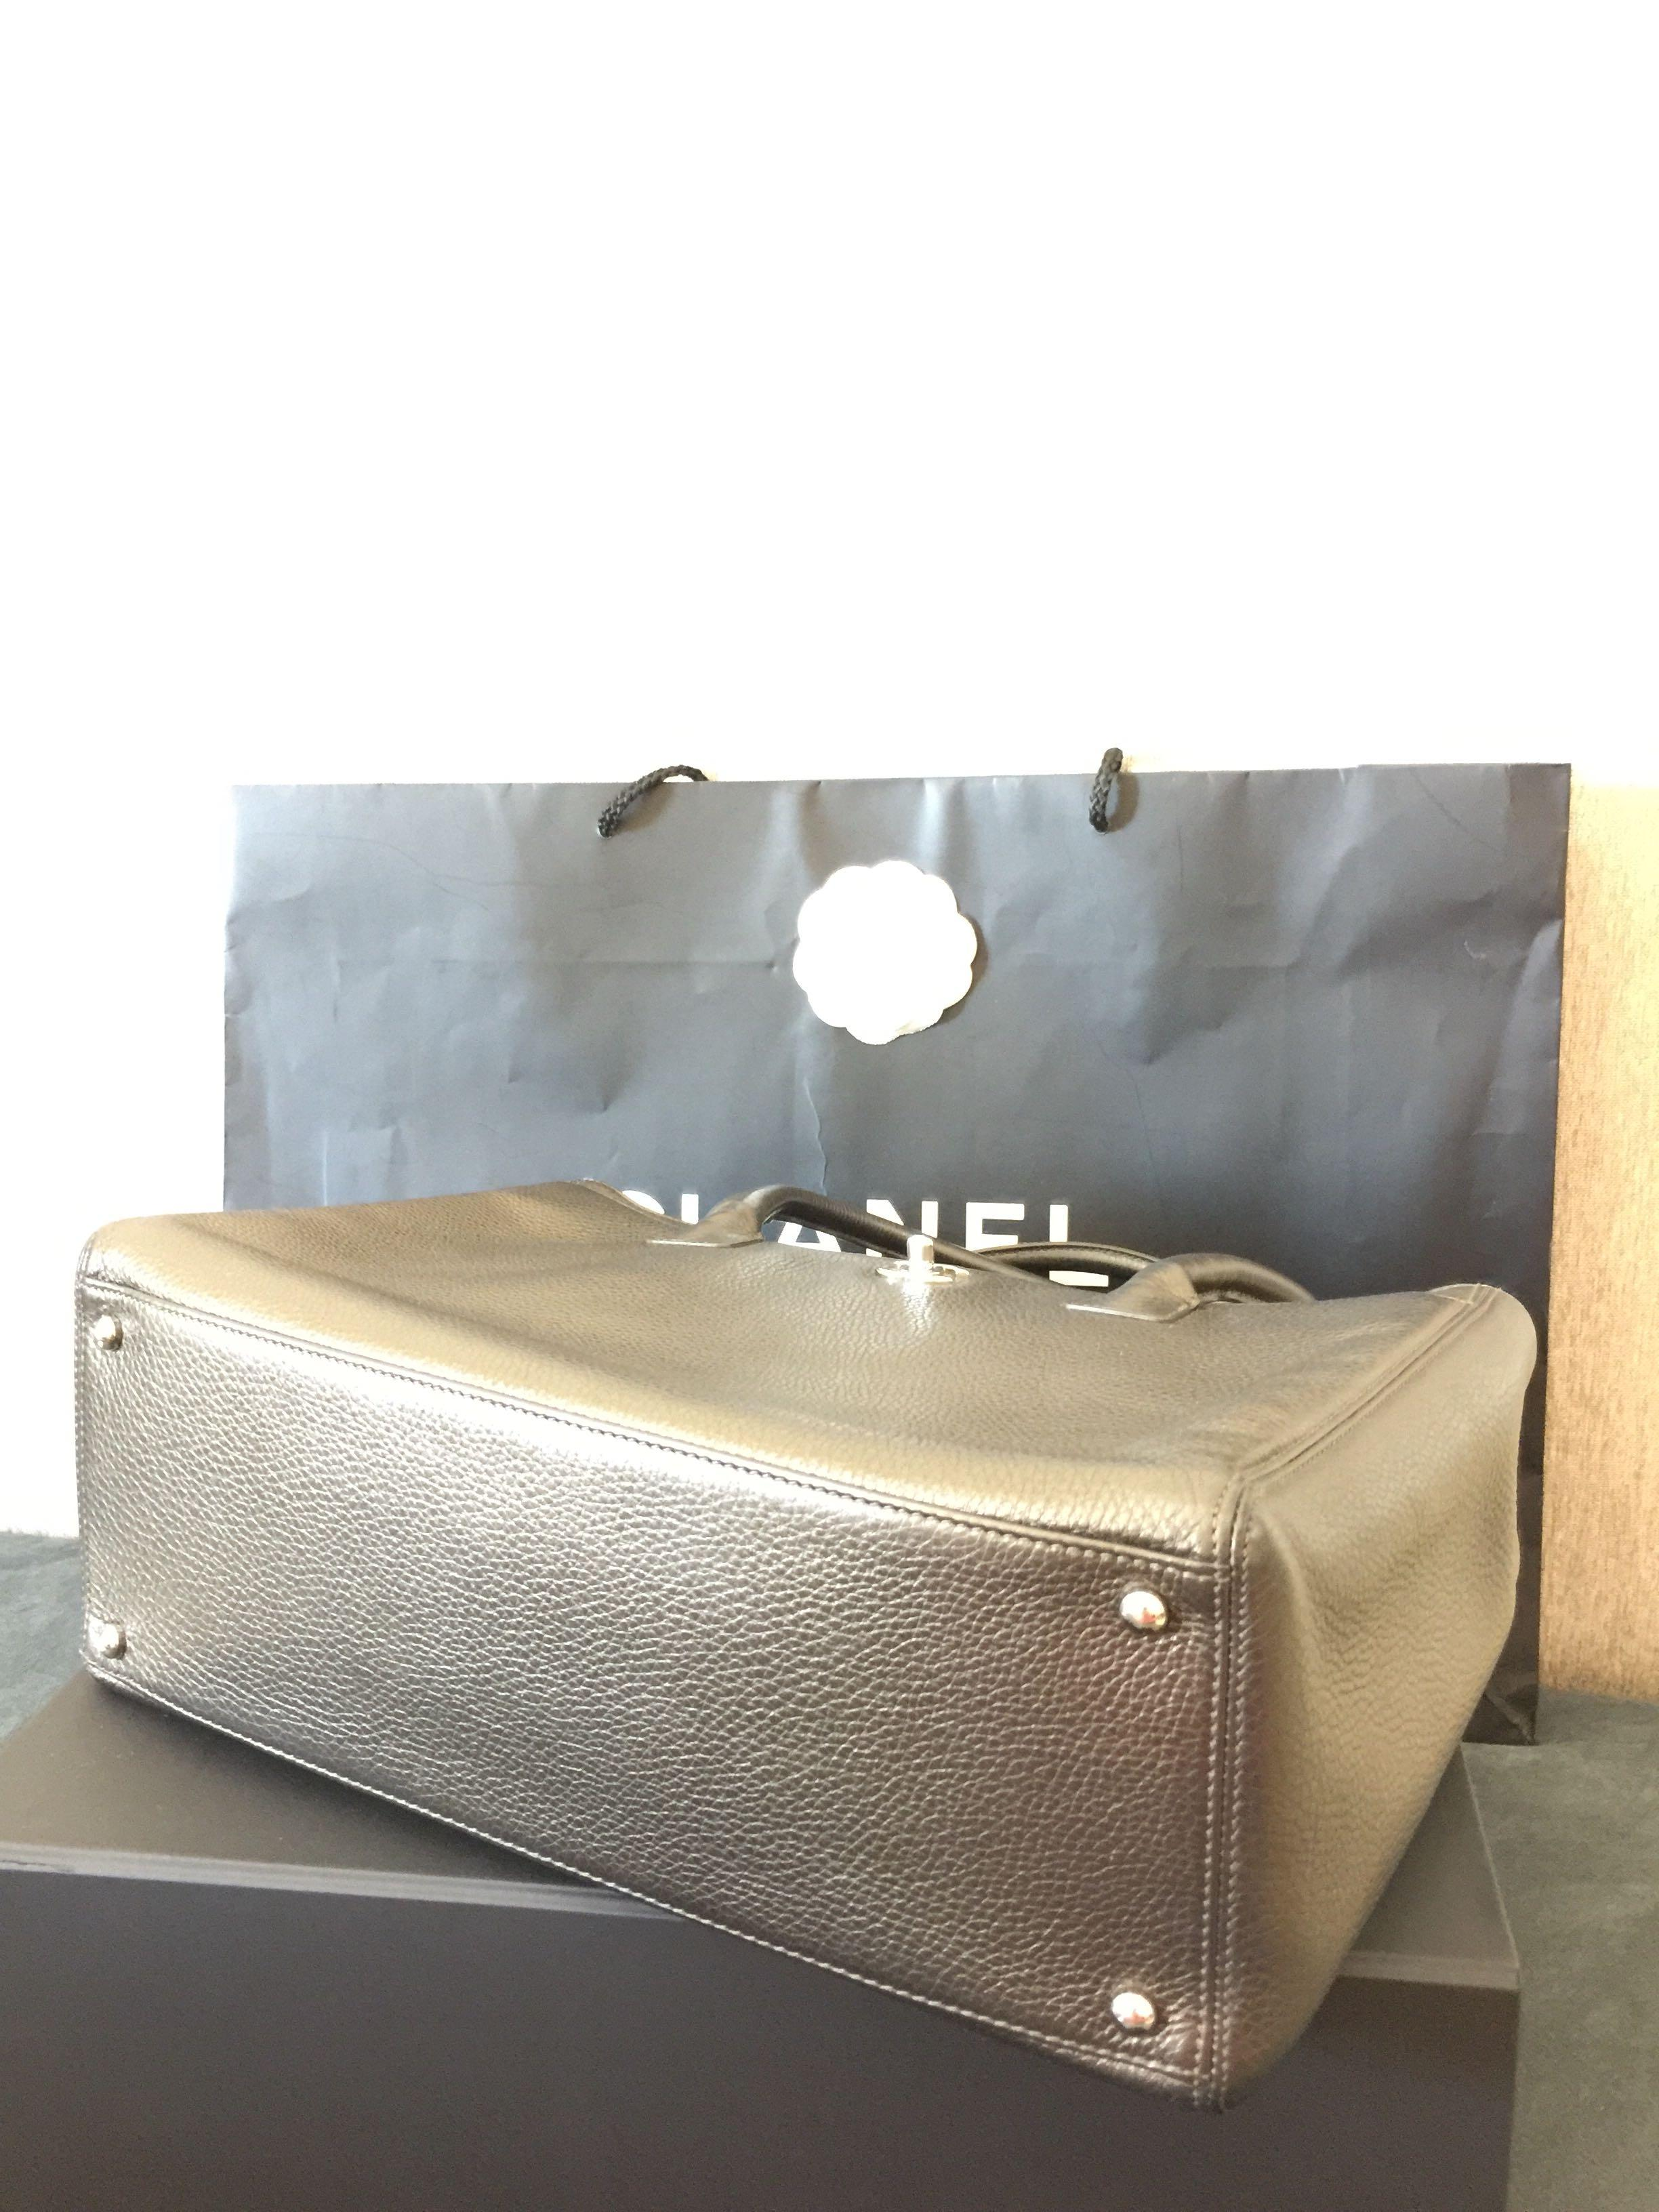 REDUCED $2200 Authentic FULL SET CHANEL Tote with Original Receipt